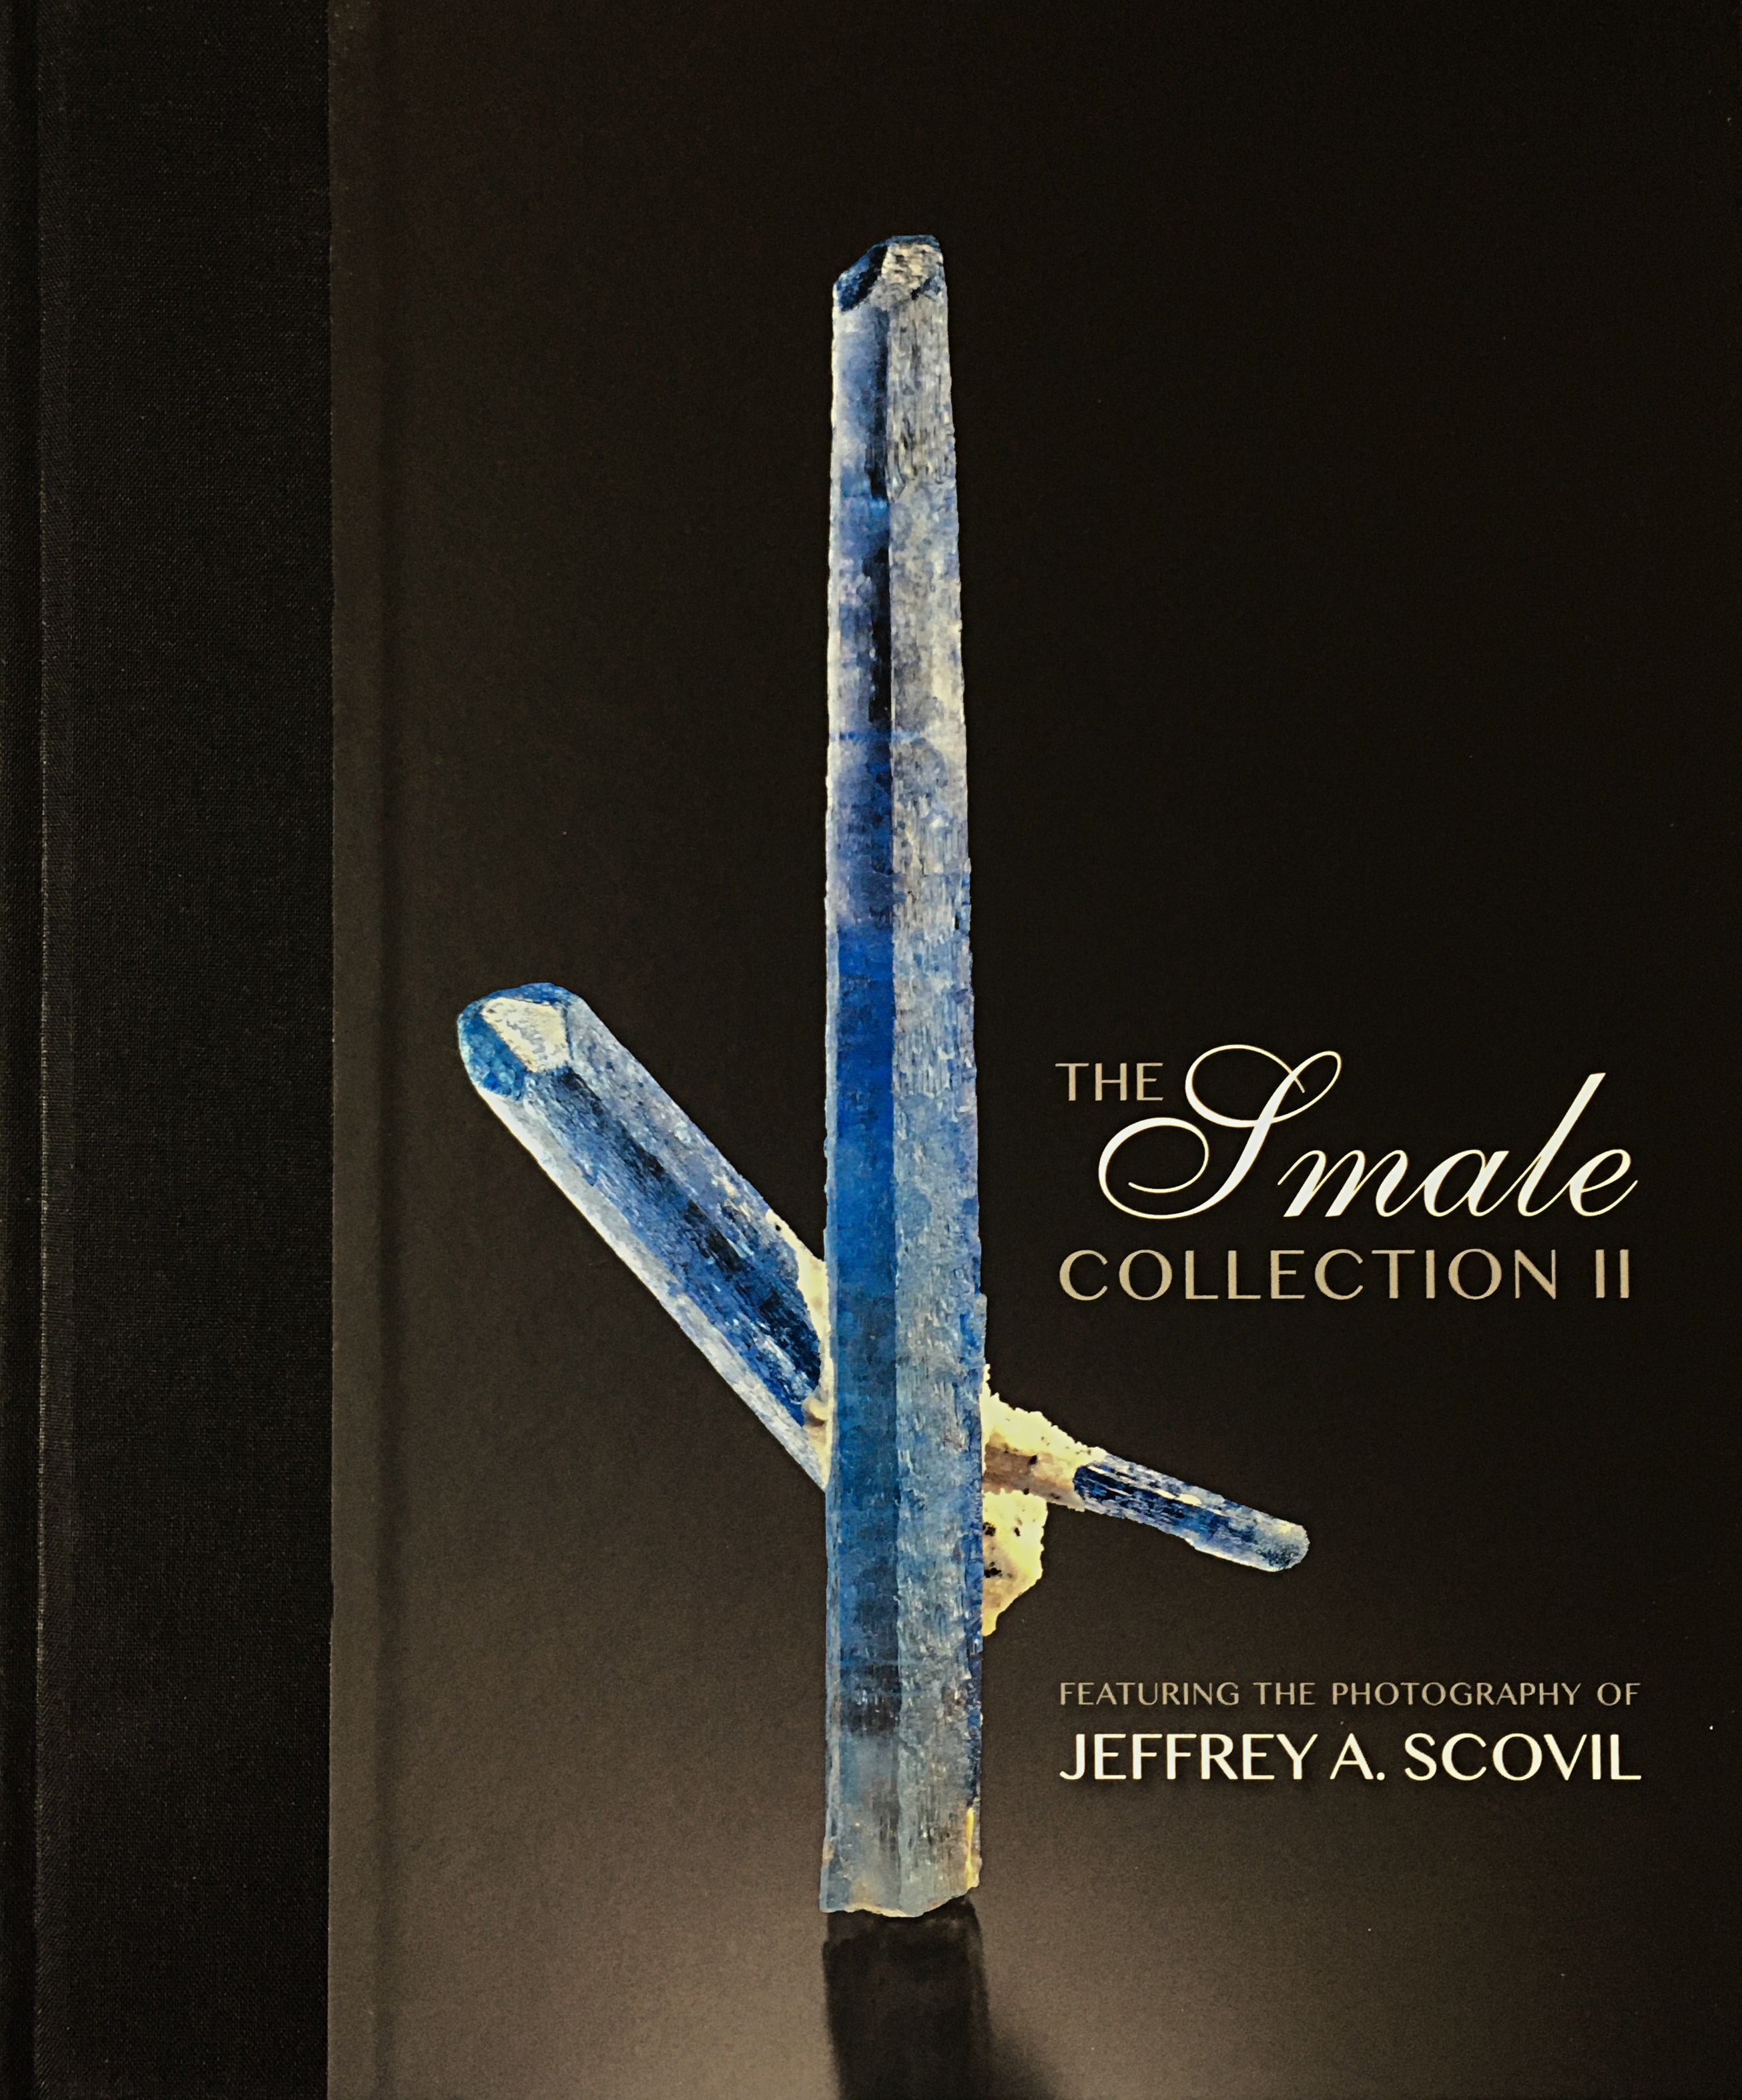 The Smale Collection II